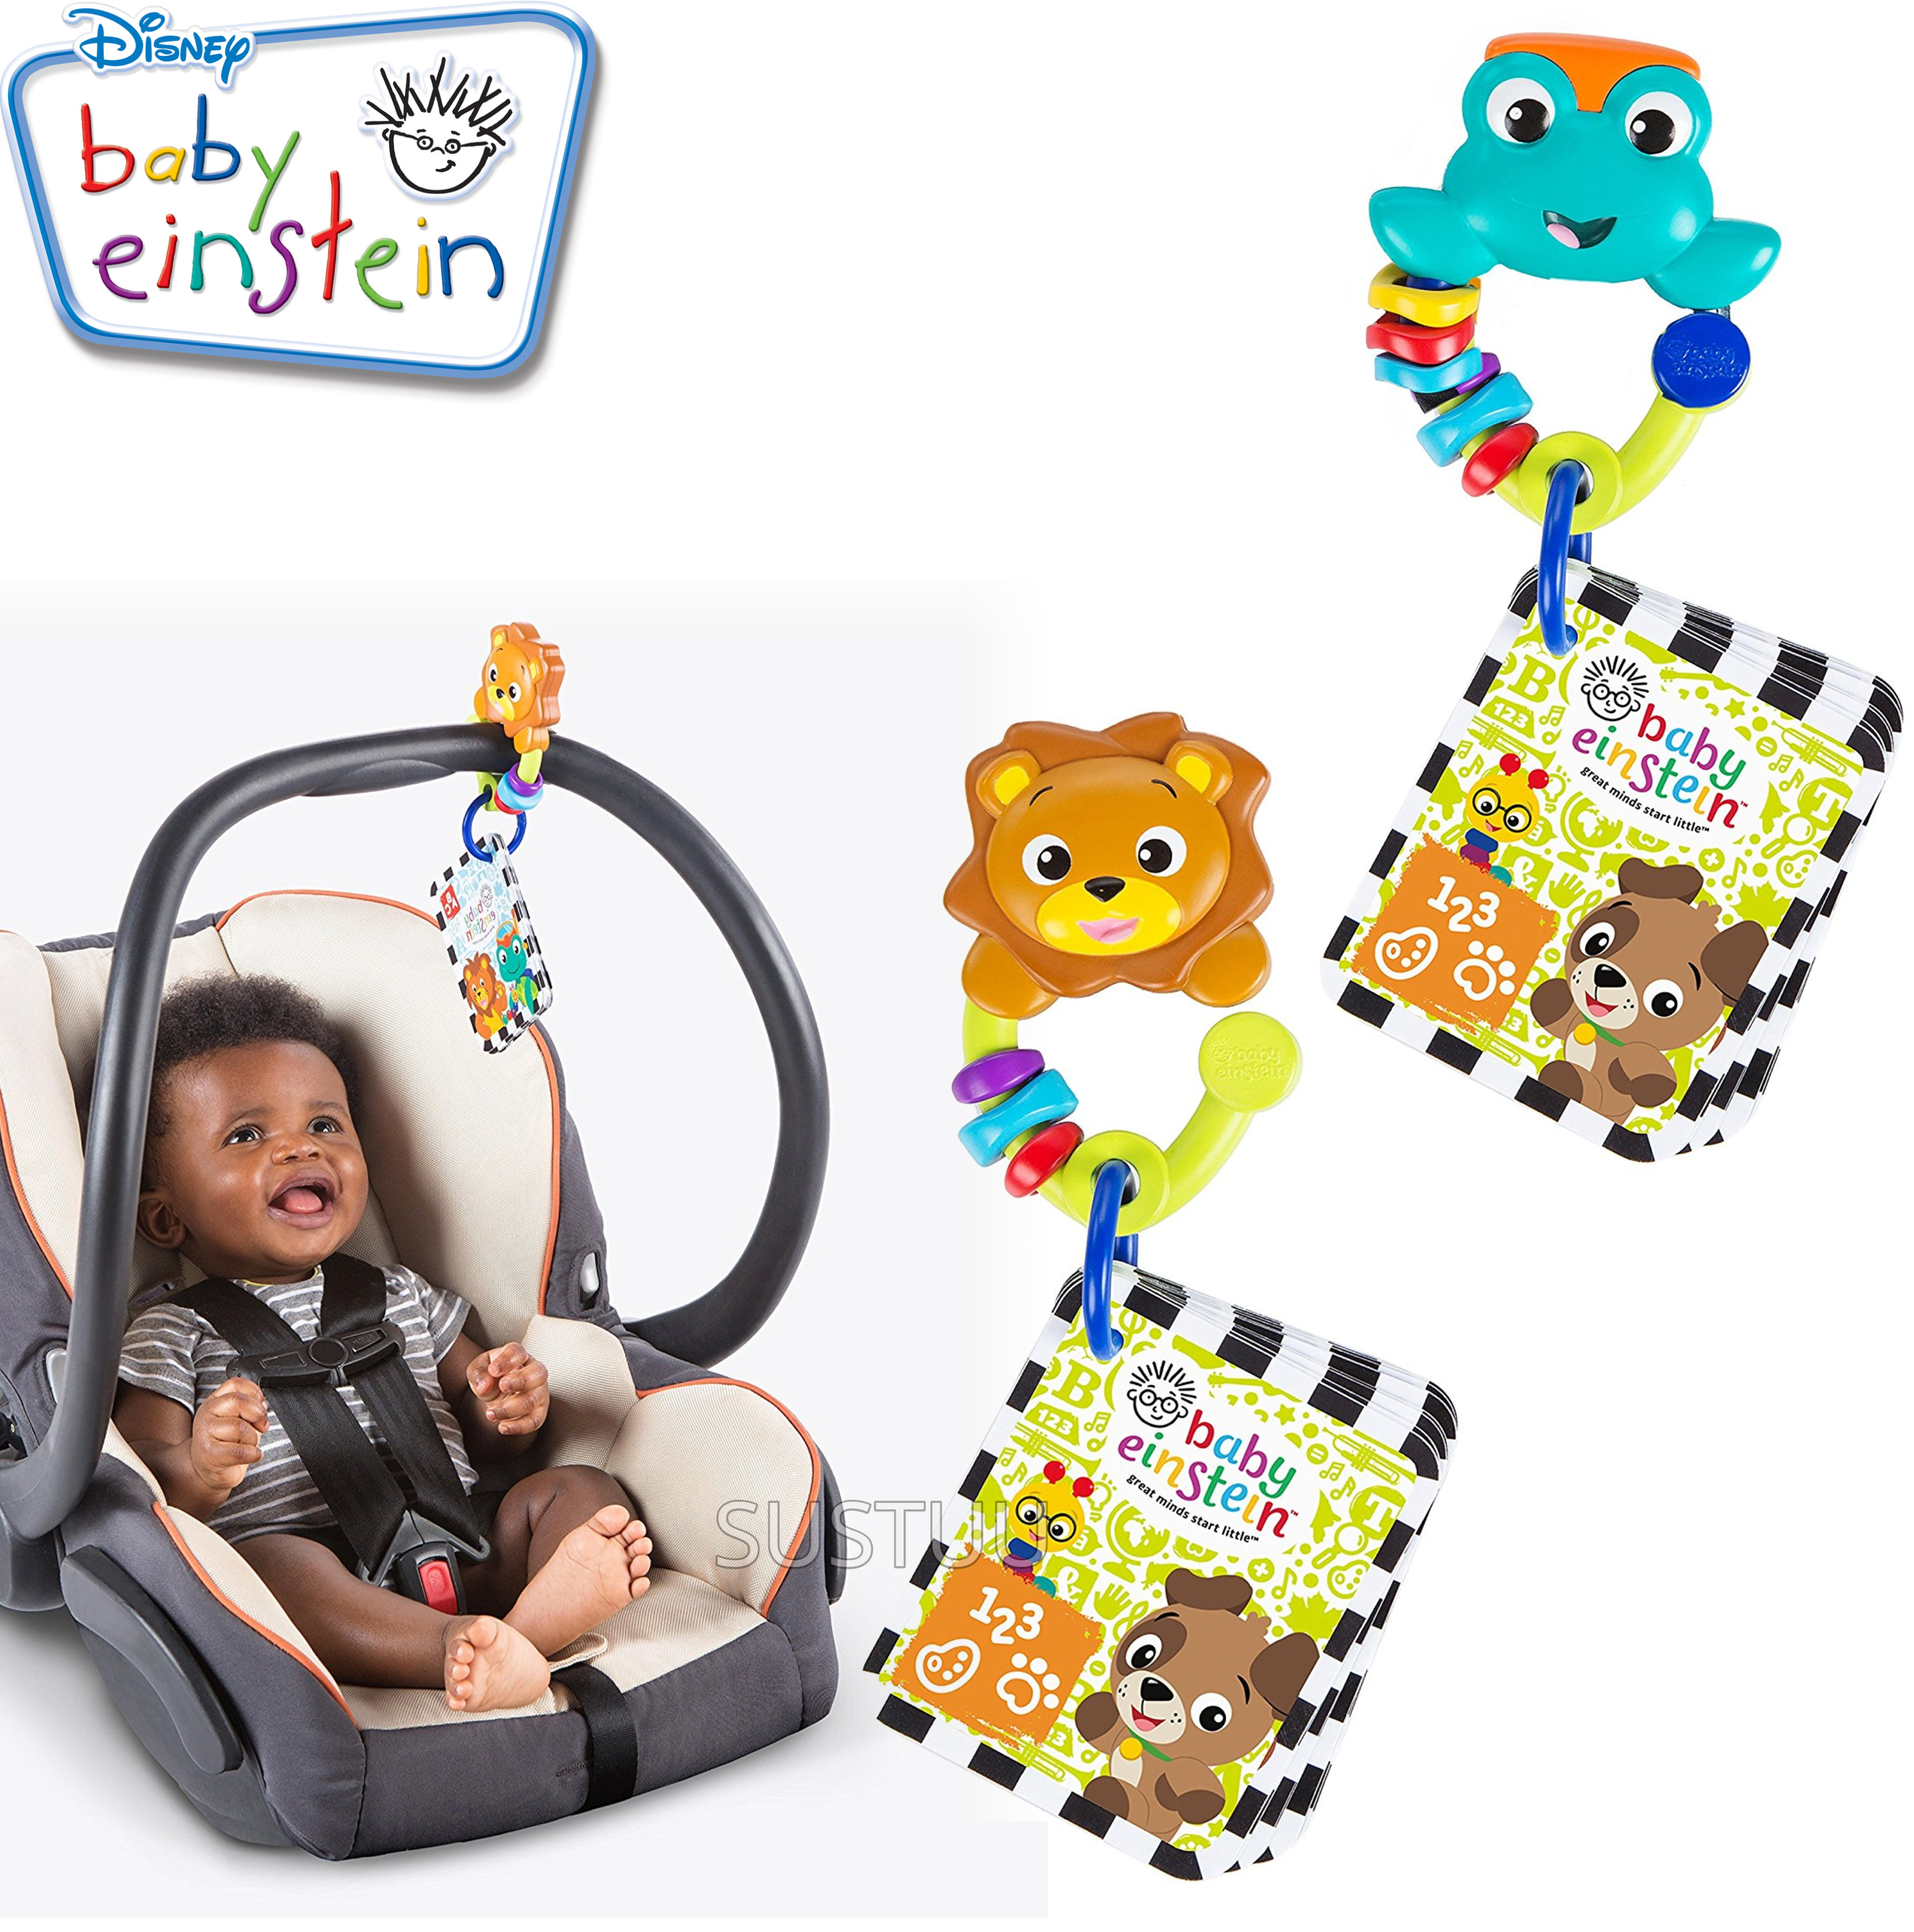 Baby Einstein World Around Me Discovery Cards | Kids Take Along Learning Fun Toy